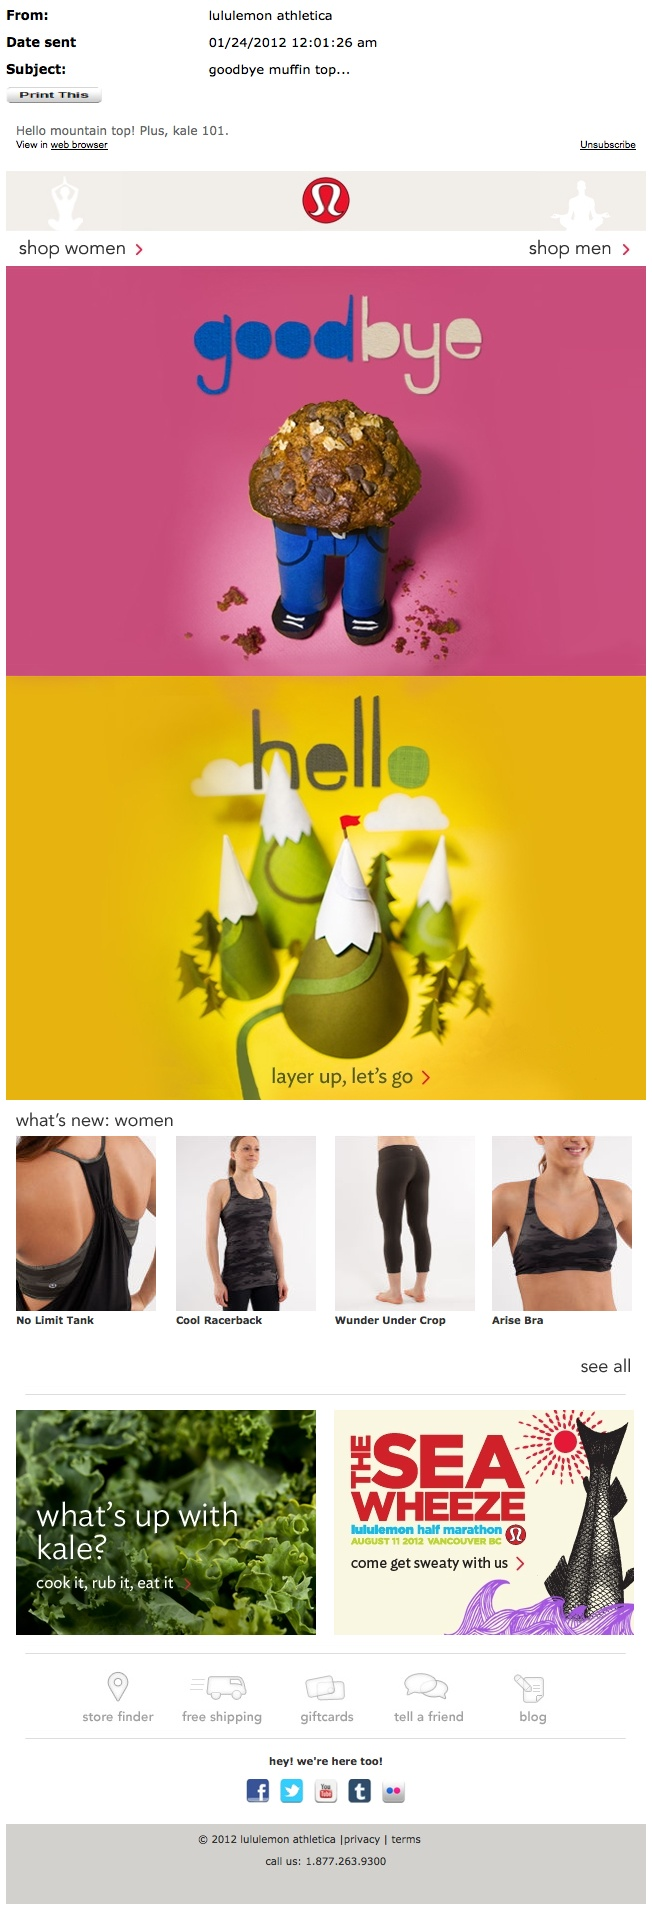 Lululemon email from 01_24_12